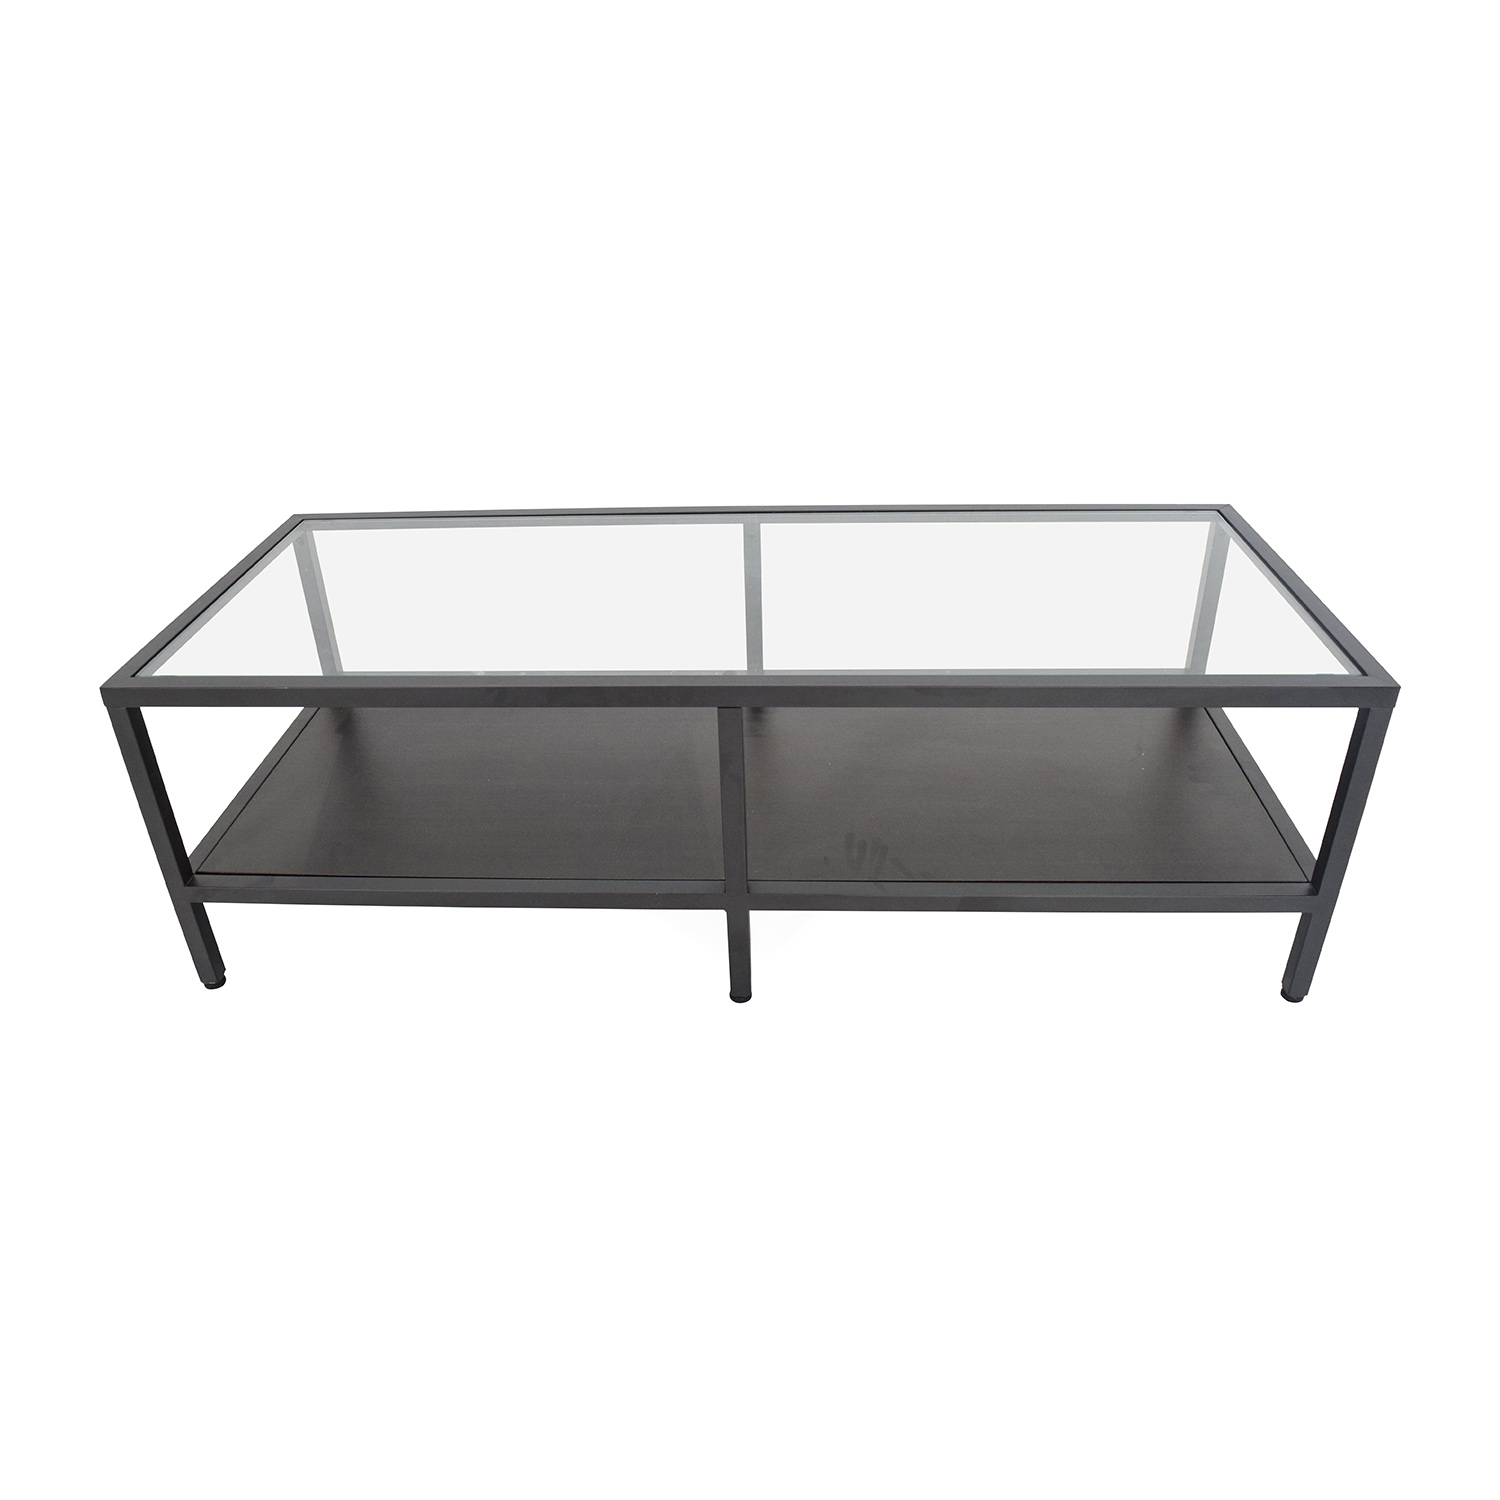 tv stand ikea black. buy ikea tv stand tv ikea black